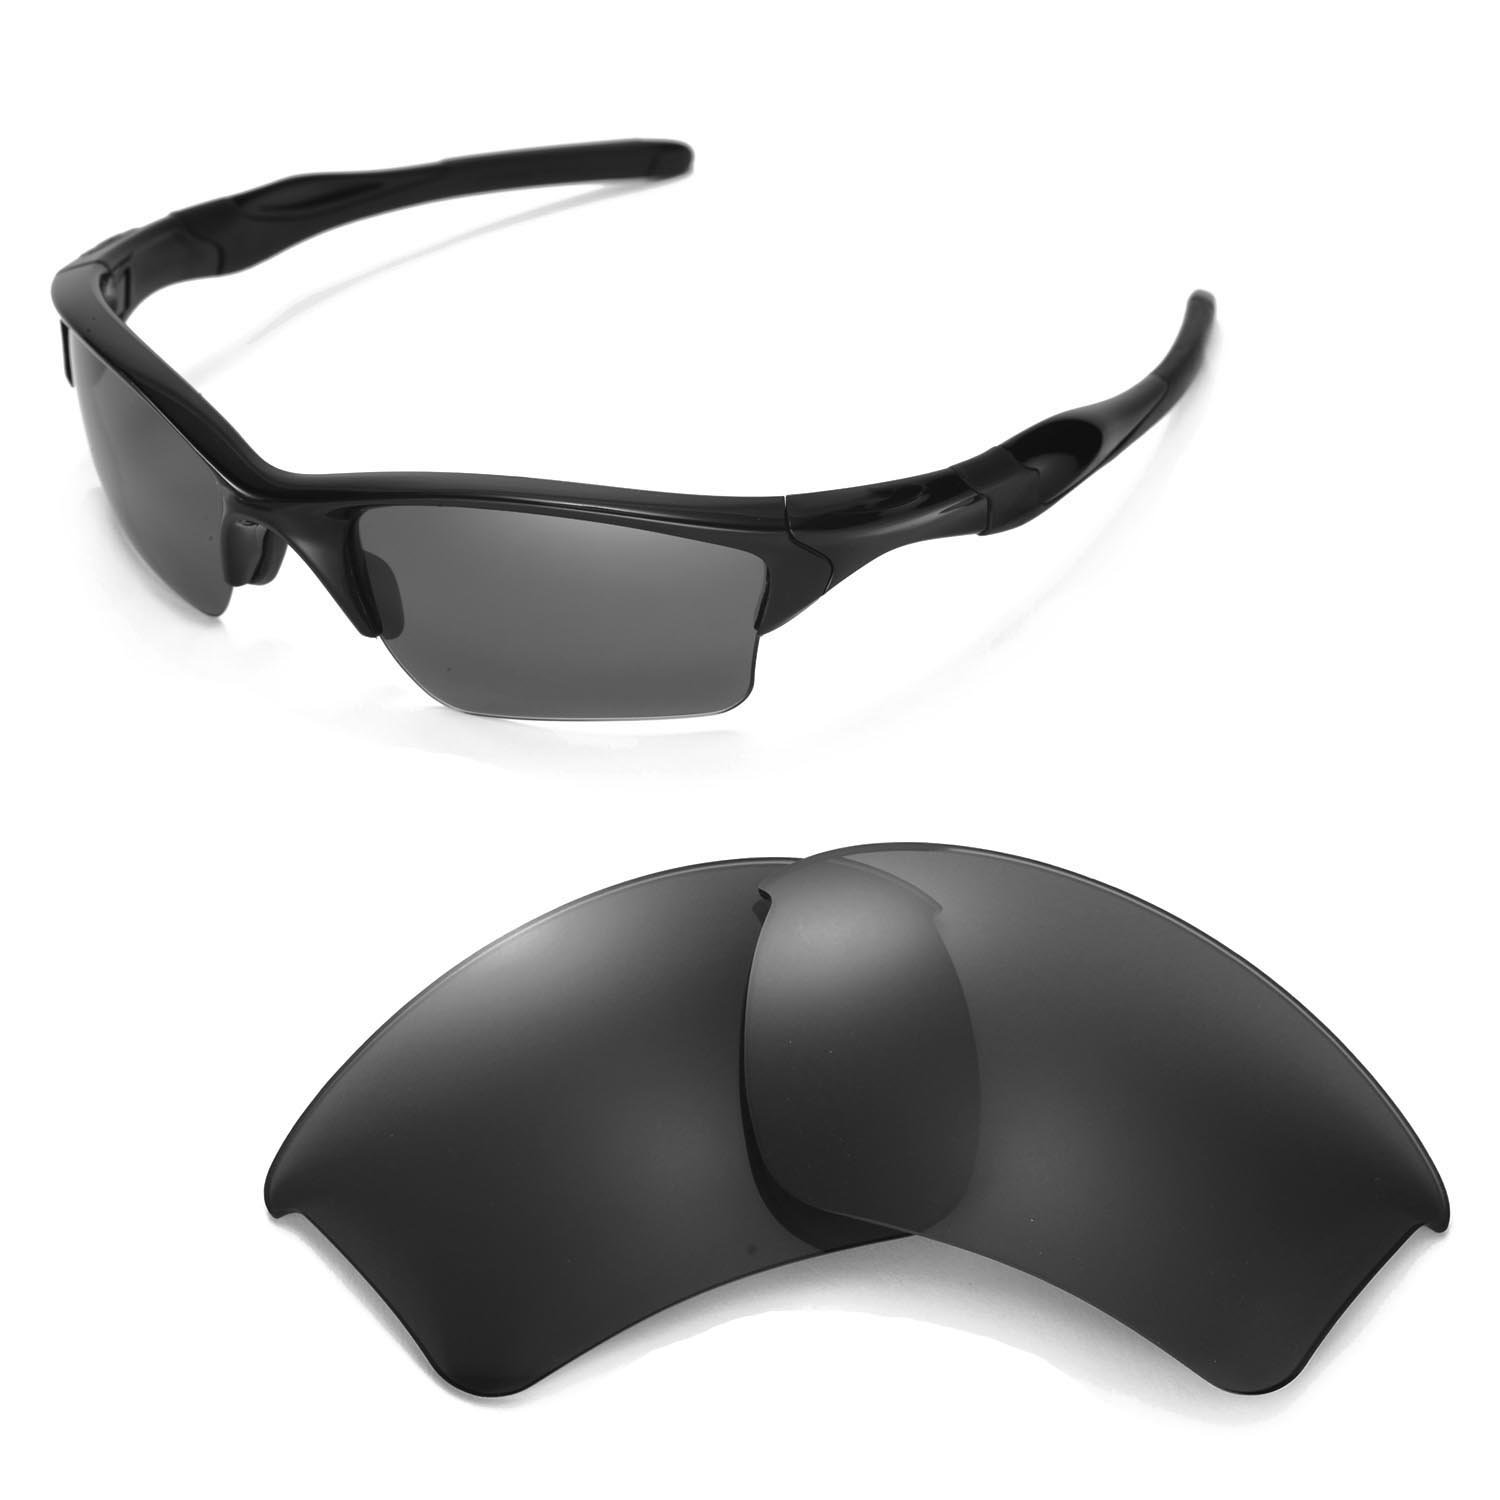 Walleva Replacement Lenses for Oakley Half Jacket 2.0 XL Sunglasses - Multiple Options Available (Black - Polarized) by Walleva